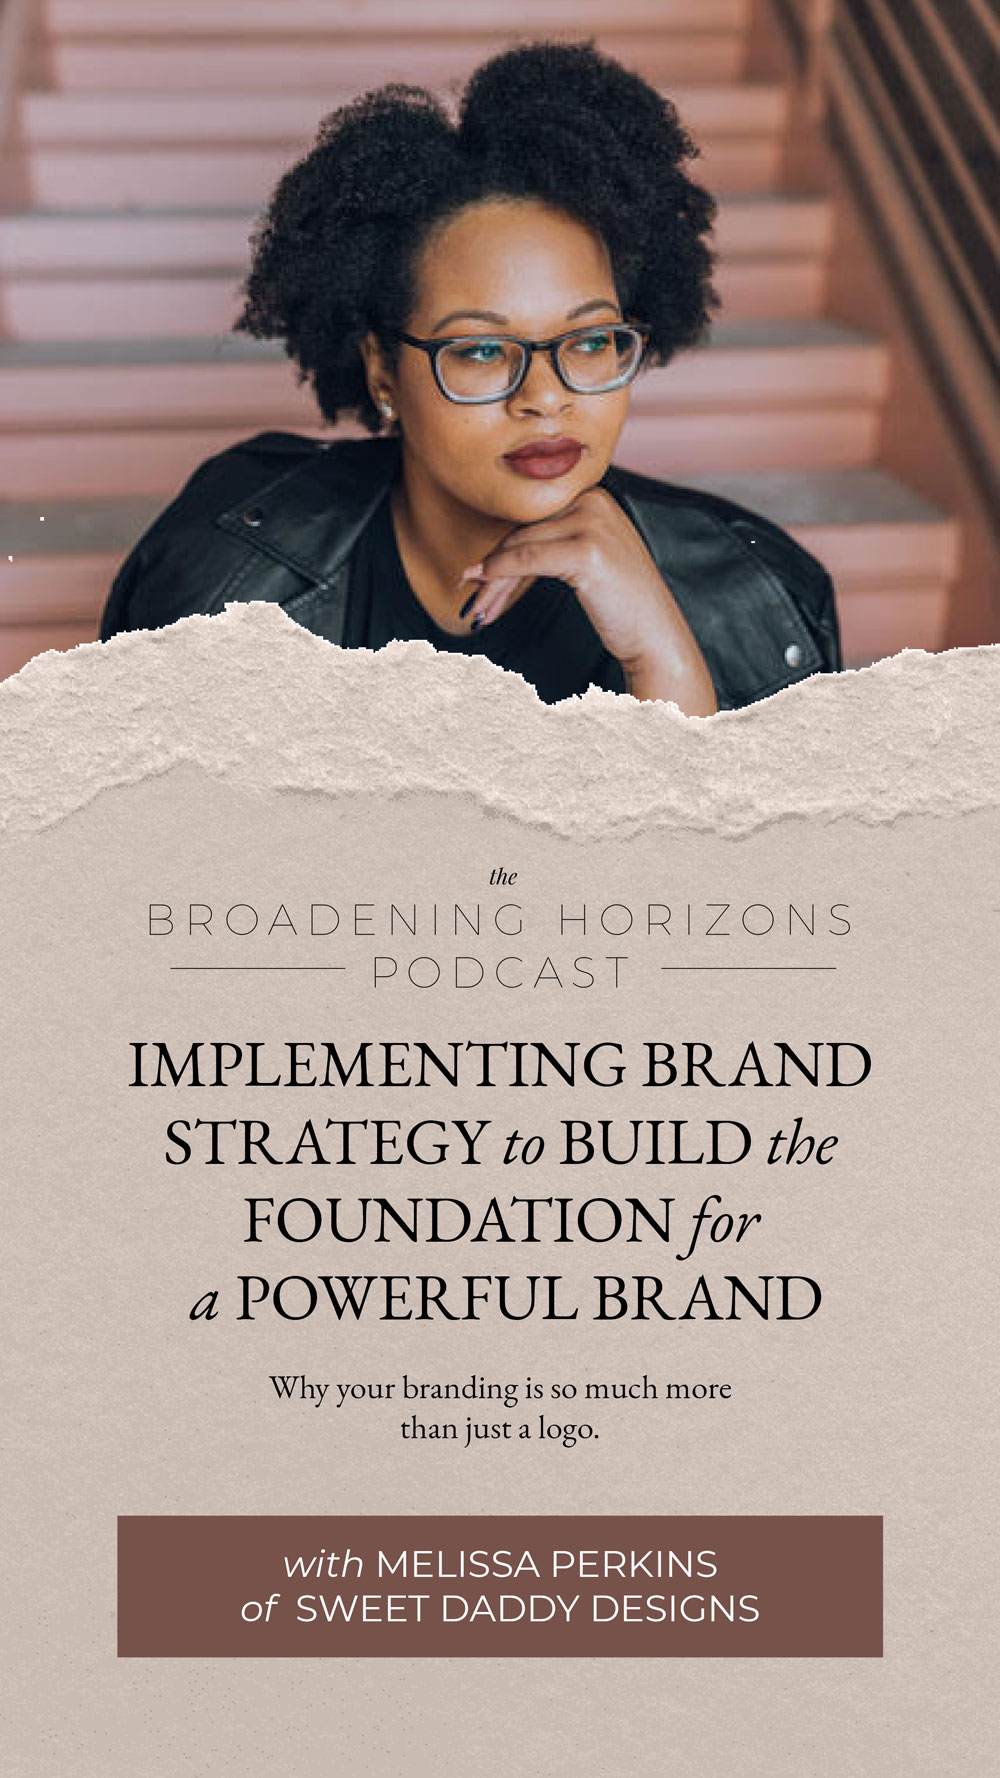 Implementing Brand Strategy to Build the Foundation for a Powerful Brand with Sweet Daddy Designs from www.sweethorizonblog.com